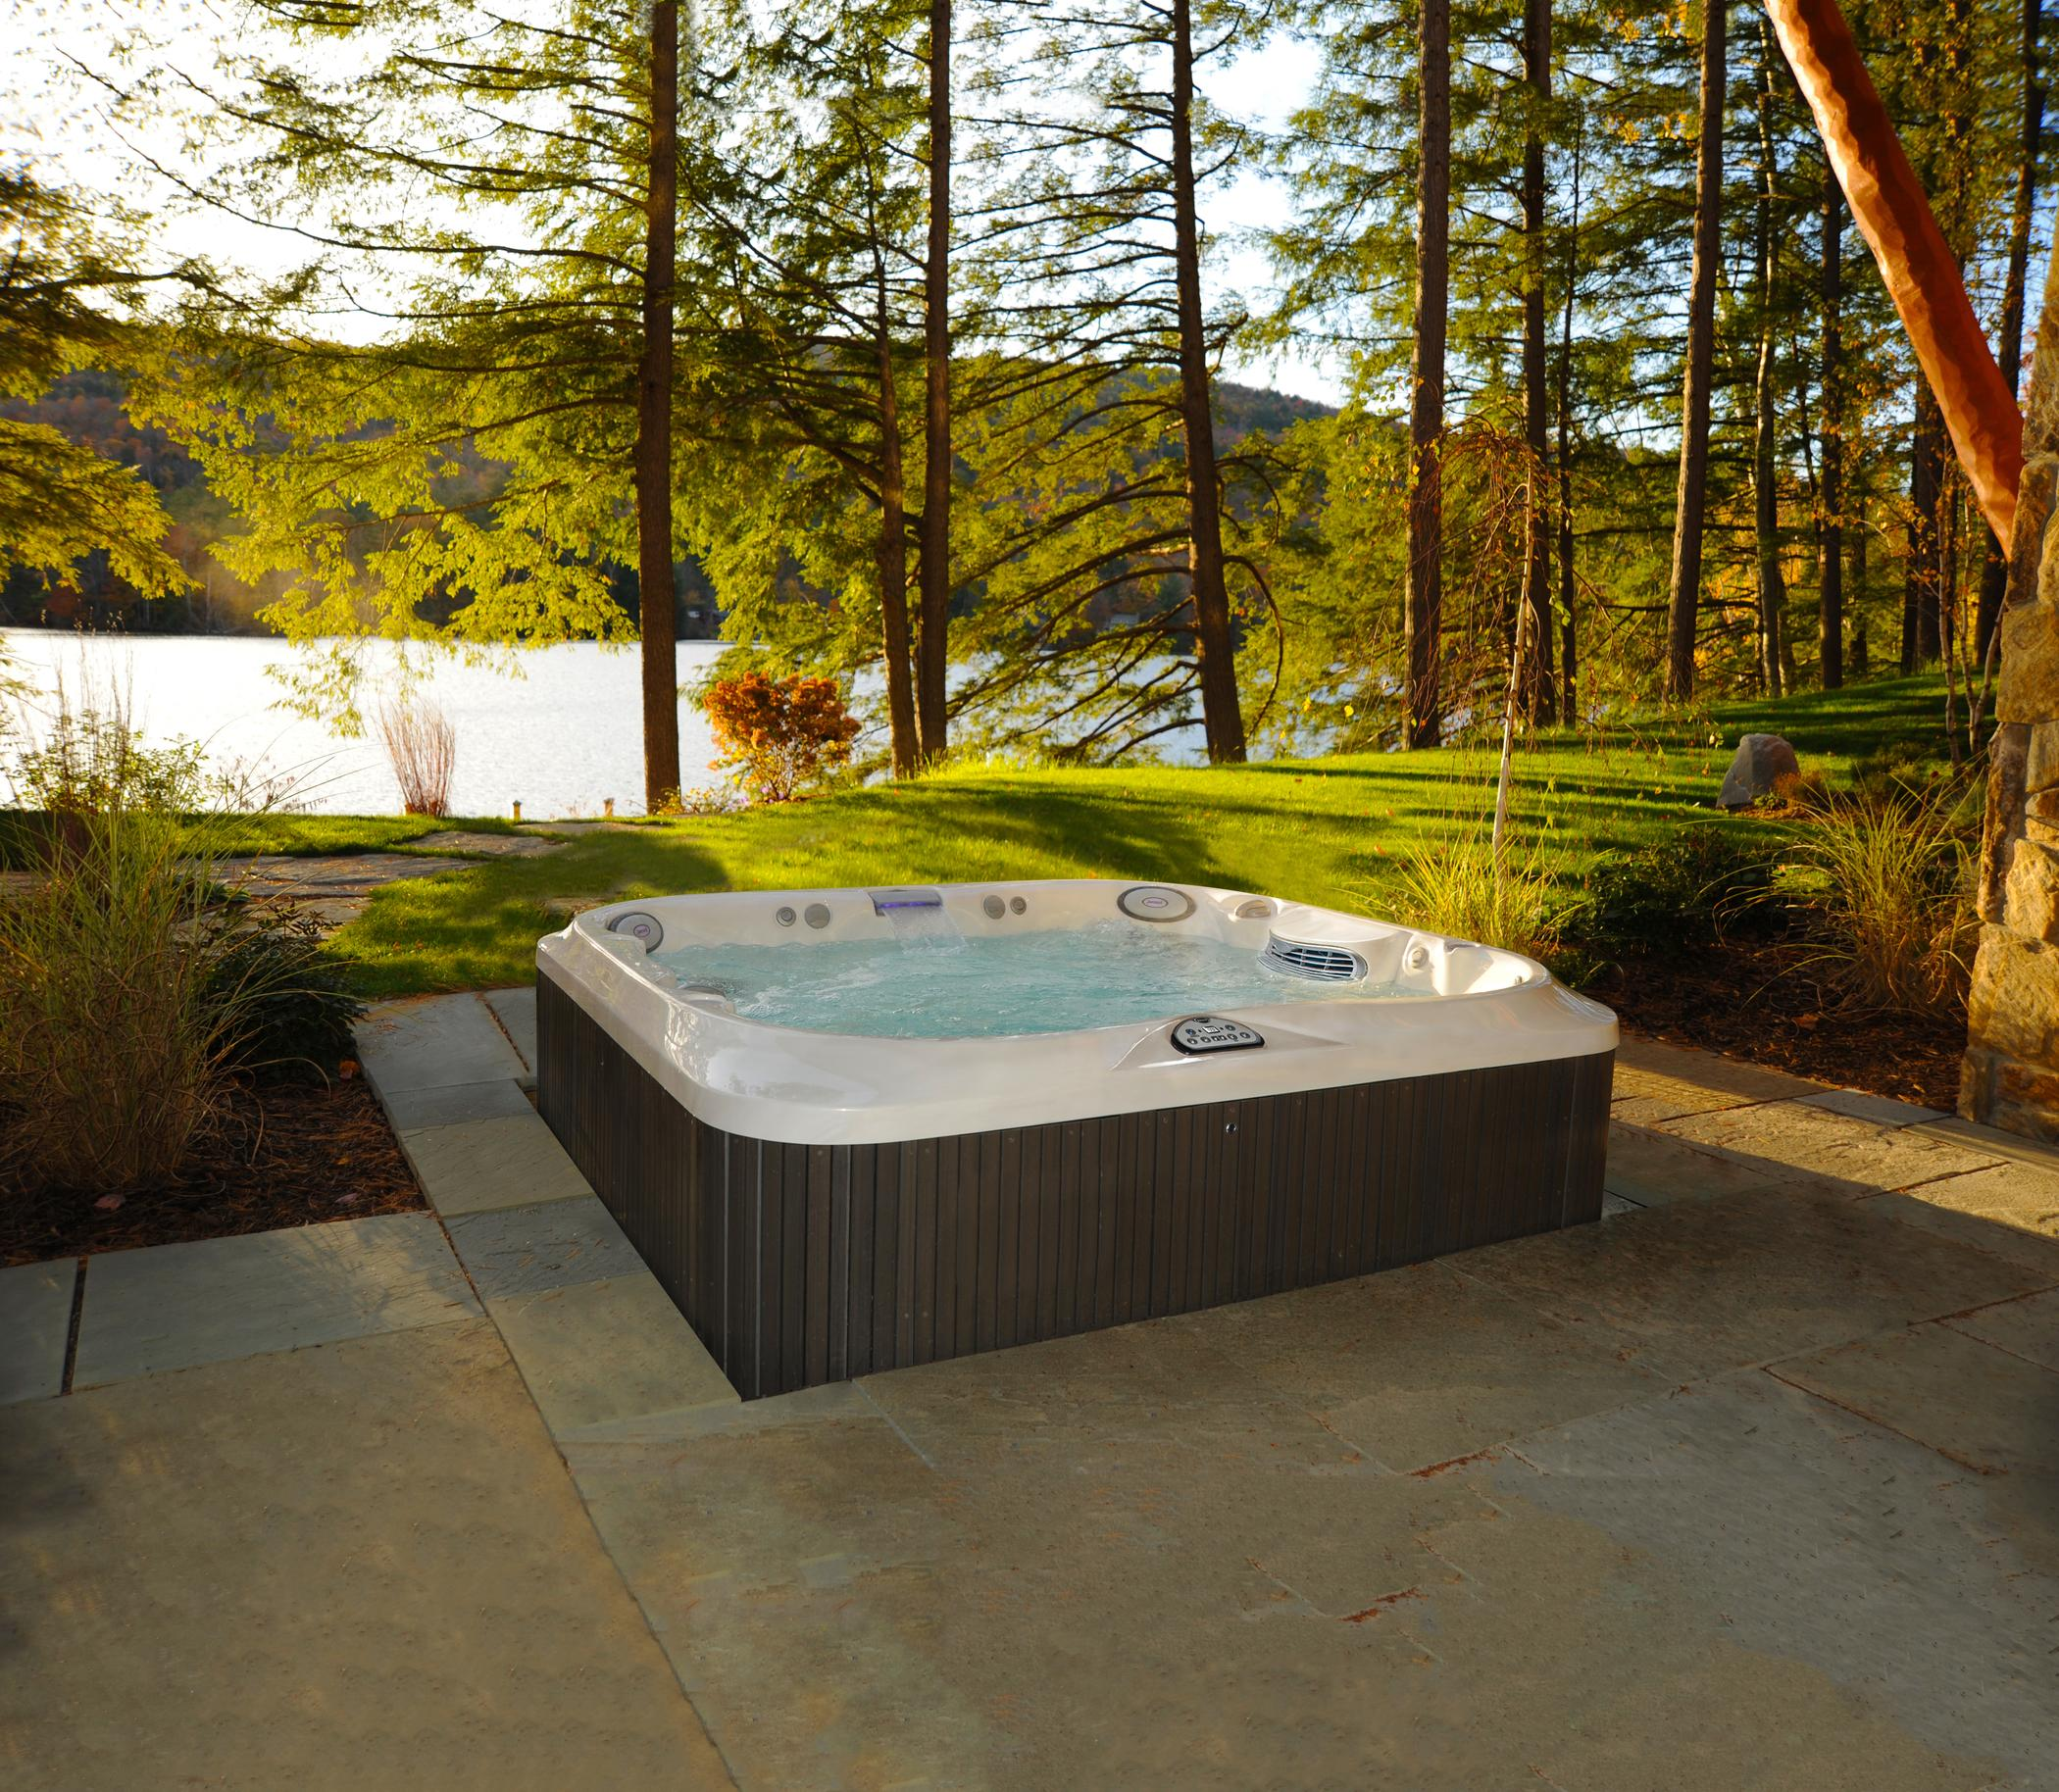 Five Tips for Buying a Hot Tub in Saskatoon